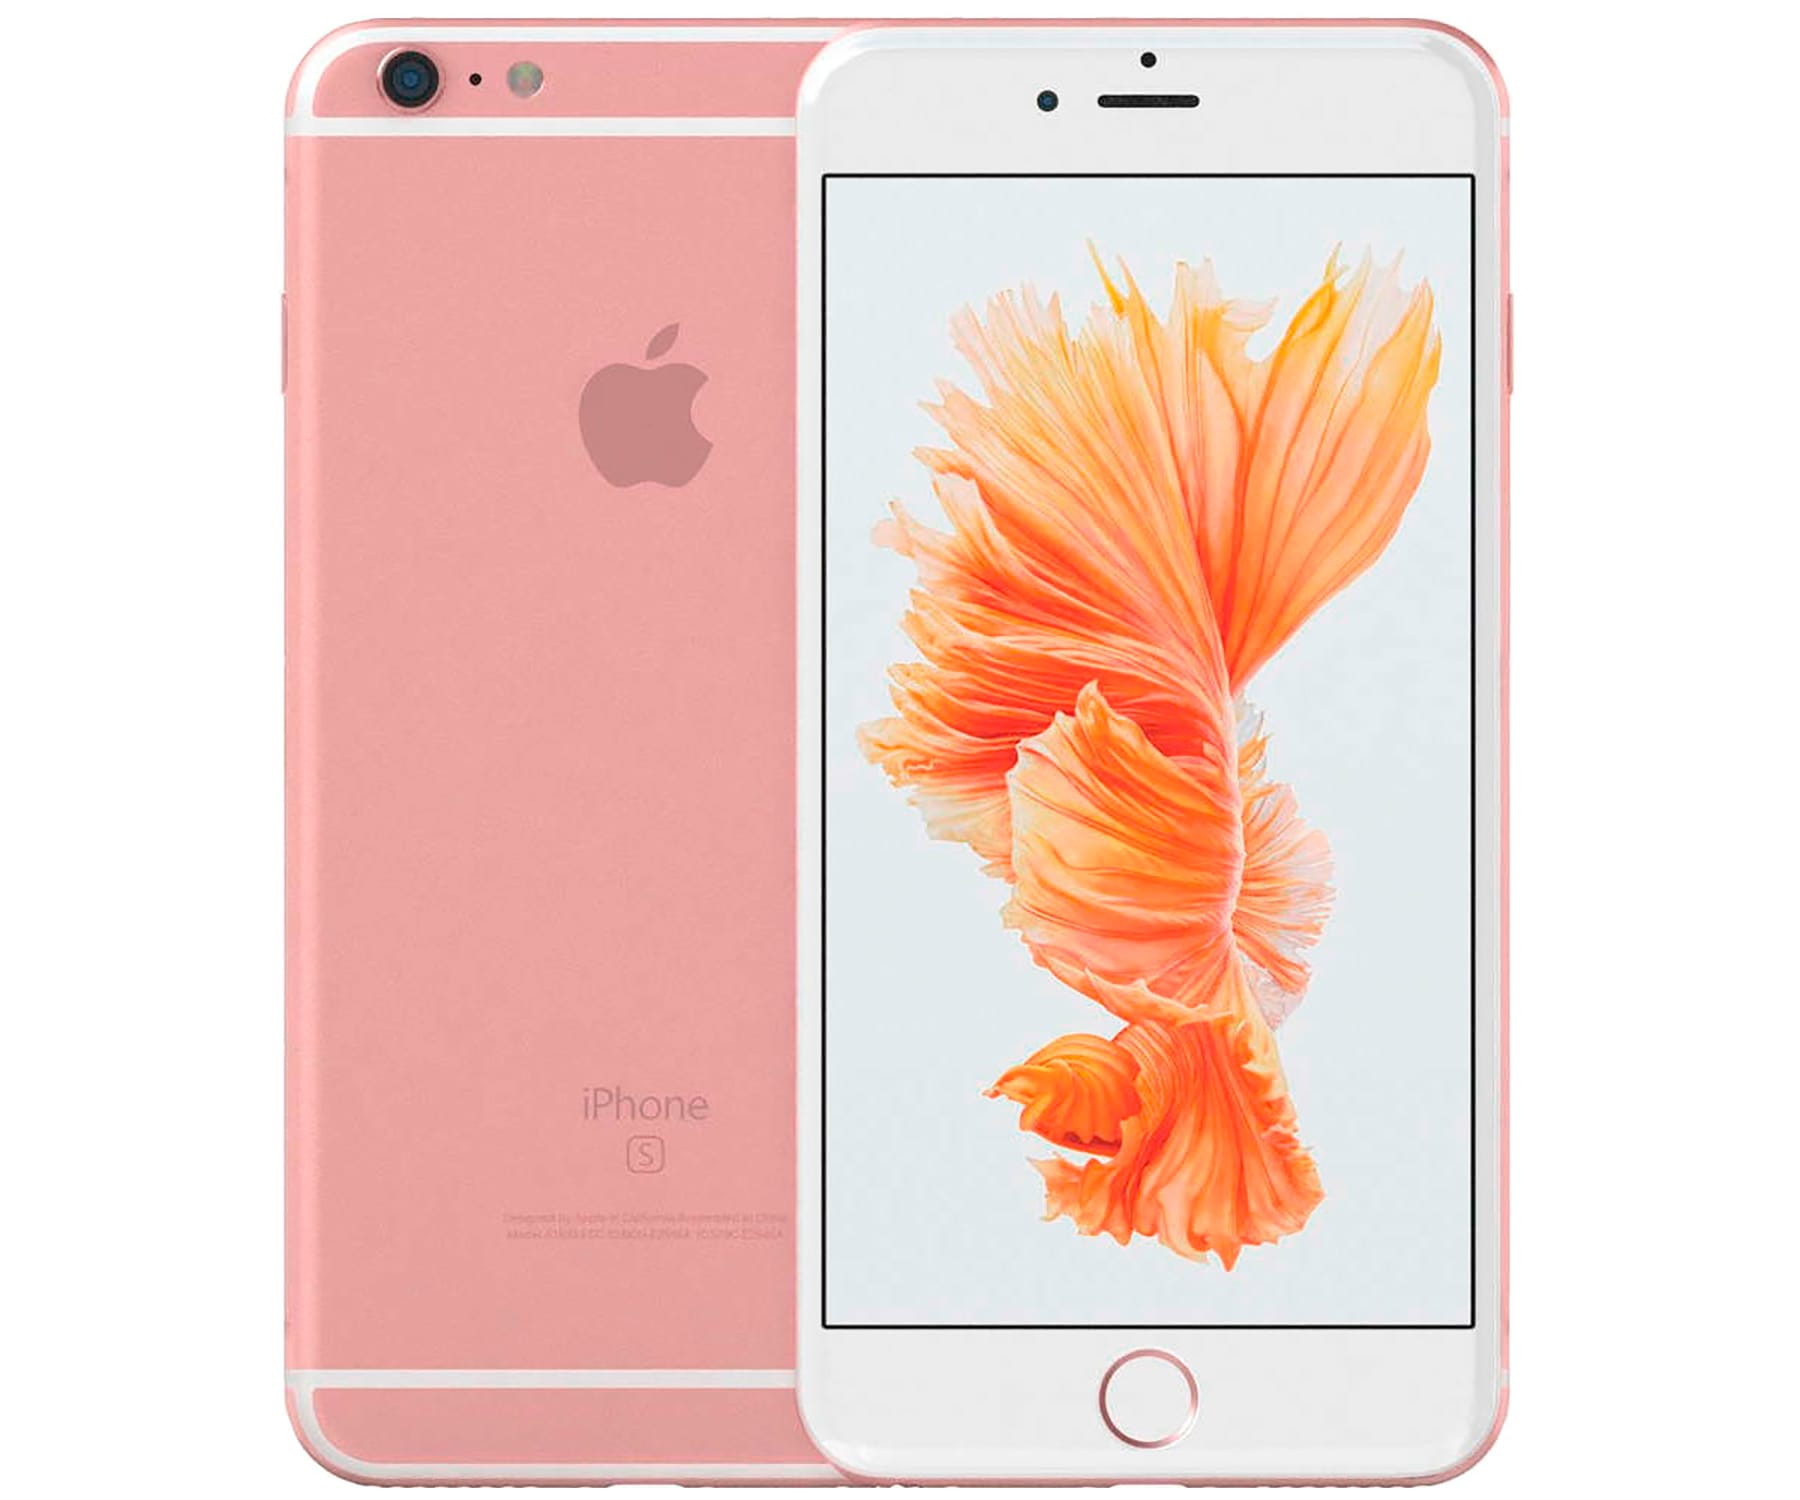 APPLE IPHONE 6S PLUS 128GB ROSA REACONDICIONADO CPO MÓVIL 4G 5.5'' RETINA FHD/2CORE/128GB/2GB RAM/12MP/5MP